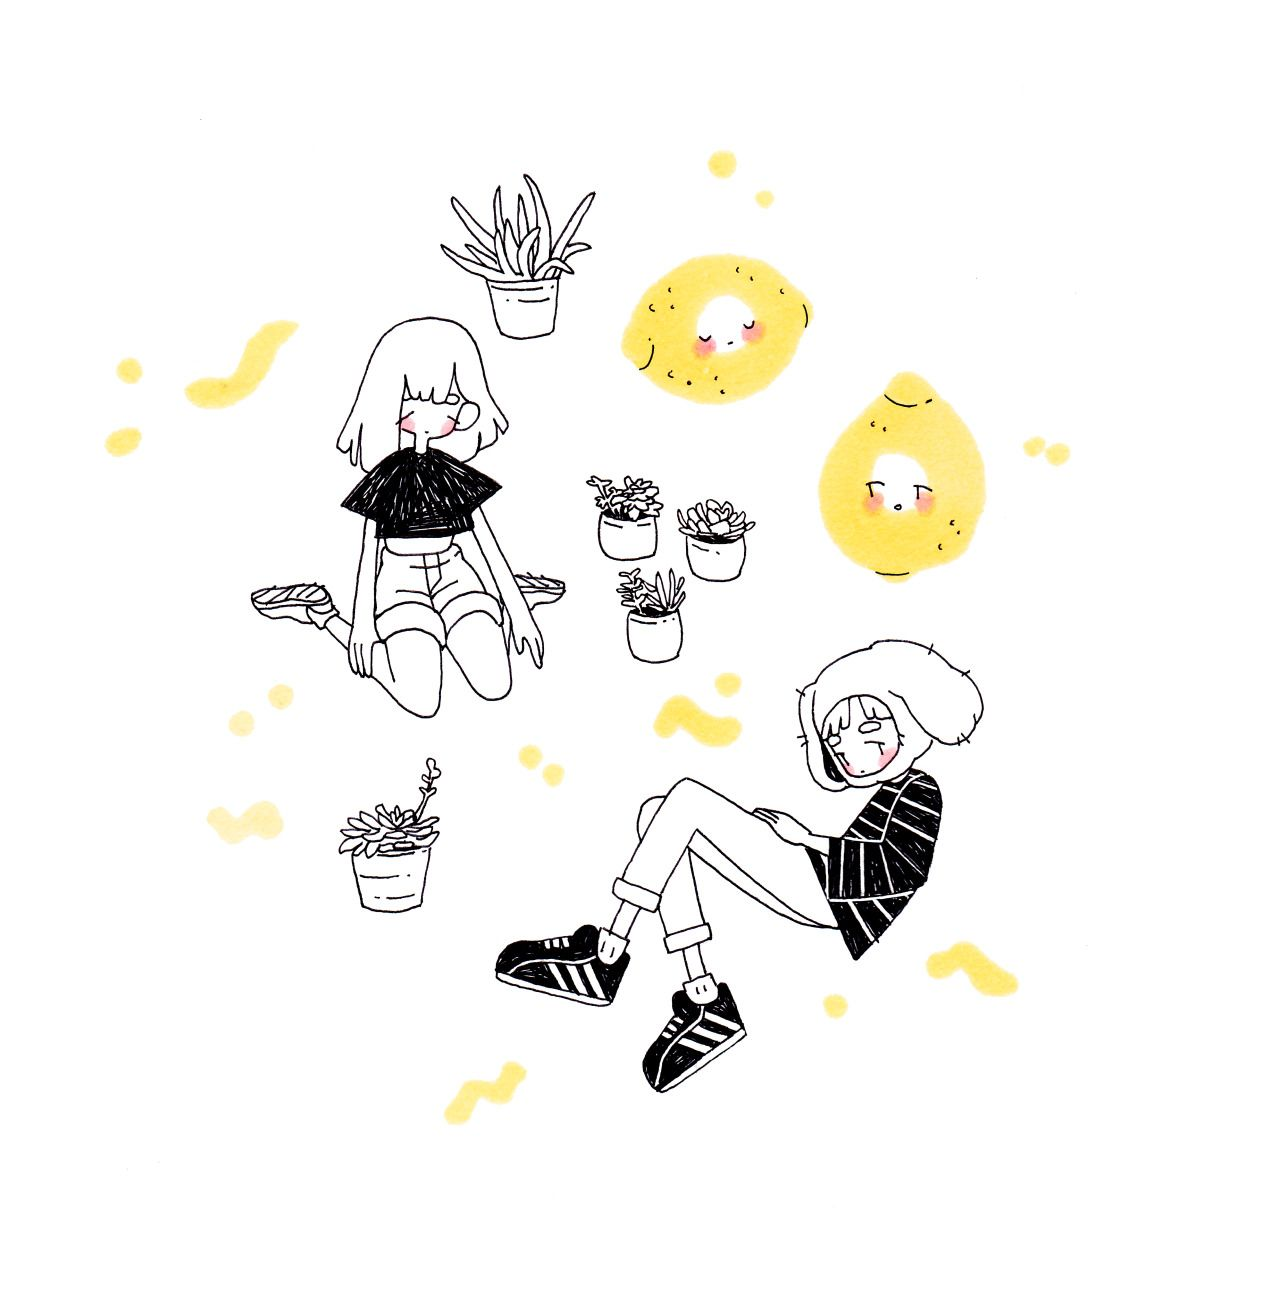 Aesthetic cute drawing Art Inspo Photo Lemon Drawing Aesthetic Drawings Tumblr Art Decoration Pinterest Photo Book Zinesketchmagdoodle In 2019 Drawings Art Art